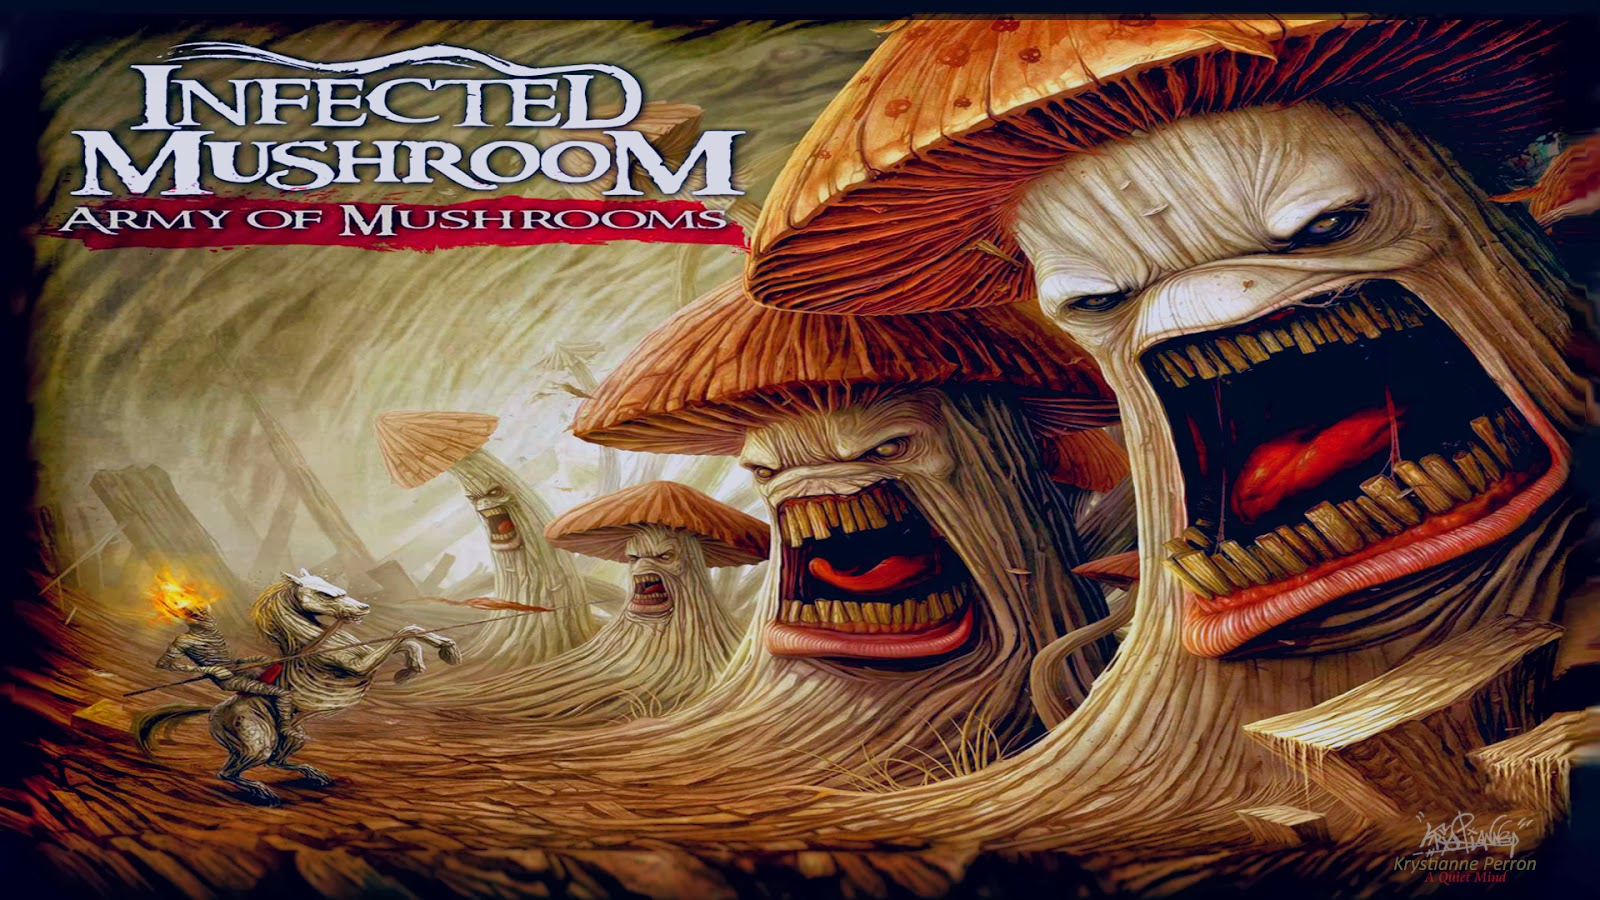 disco infected mushroom army of mushrooms